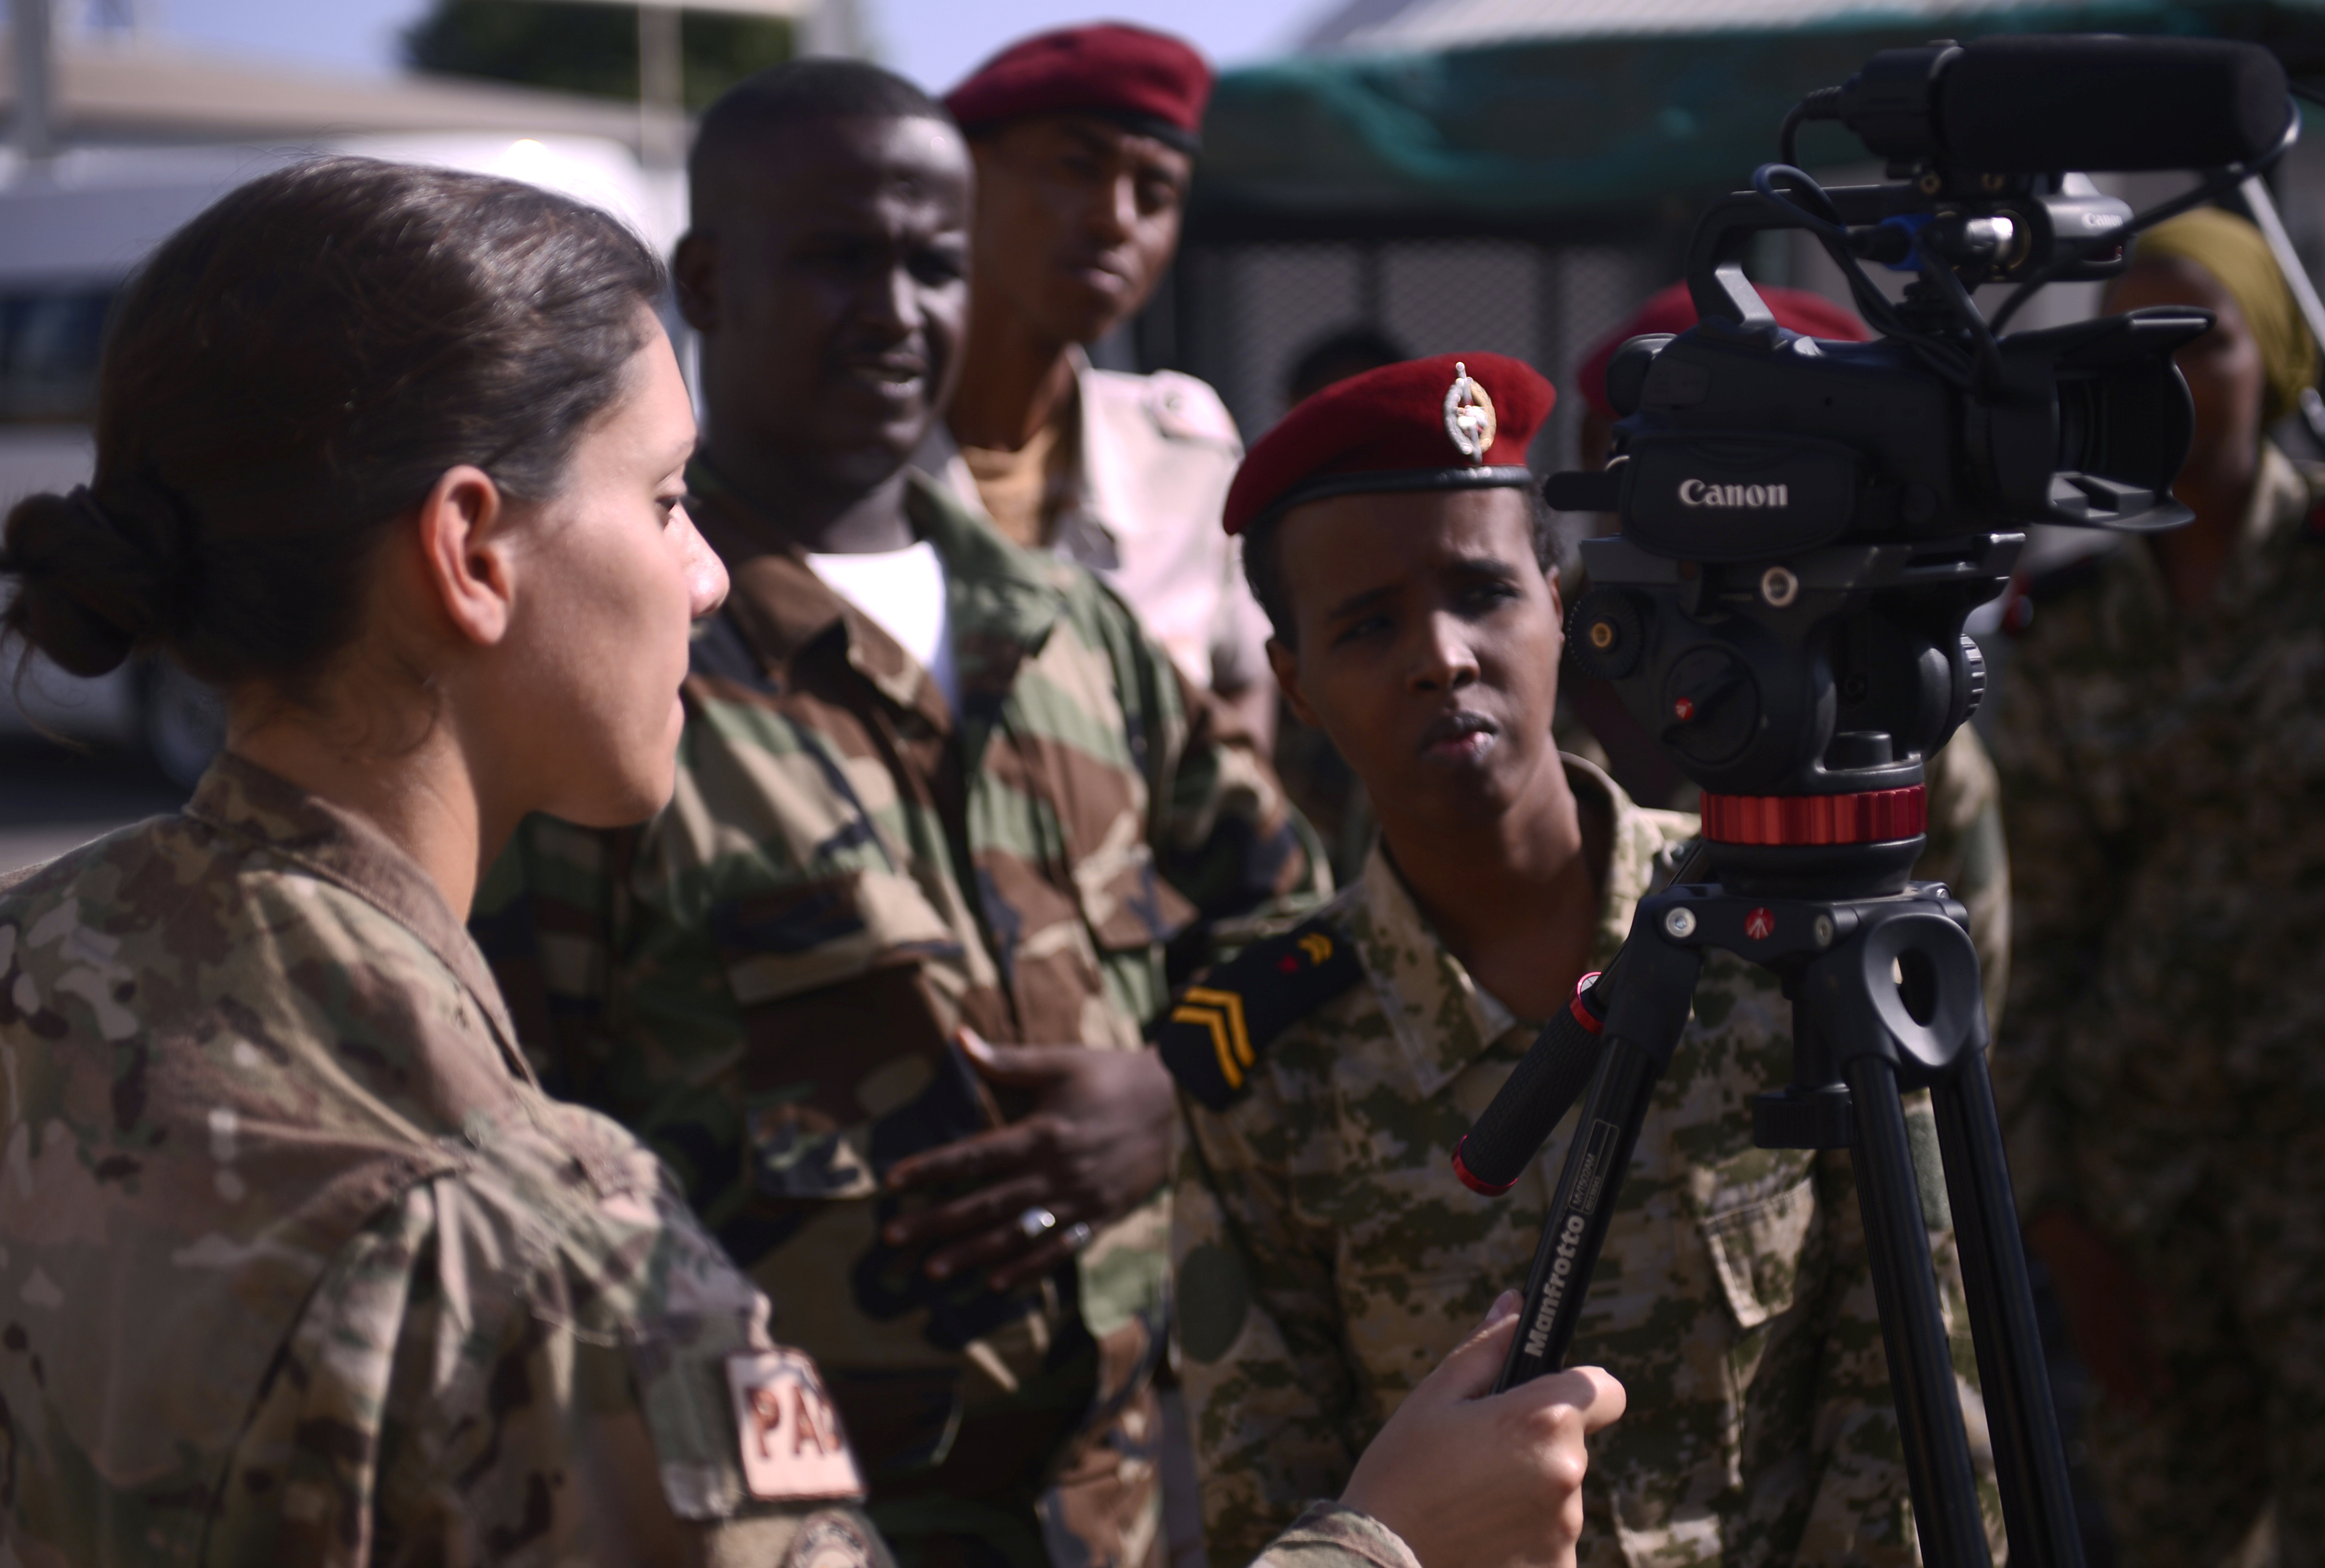 Senior Airman Nina Orlando, Combined Joint Task Force-Horn of Africa broadcast journalist, left, discusses video composition with members of the Djibouti Armed Forces (FAD) Dec. 3, 2015, at Camp Lemonnier, Djibouti. Similar to U.S. military journalists, the Djiboutian photographers and videographers gather still and video imagery for mission documentation, media distribution and operational purposes. The engagement with the FAD enabled participants to share their knowledge and experiences with each other and build relationships between the two militaries. (U.S. Air Force photo by Senior Airman Peter Thompson)